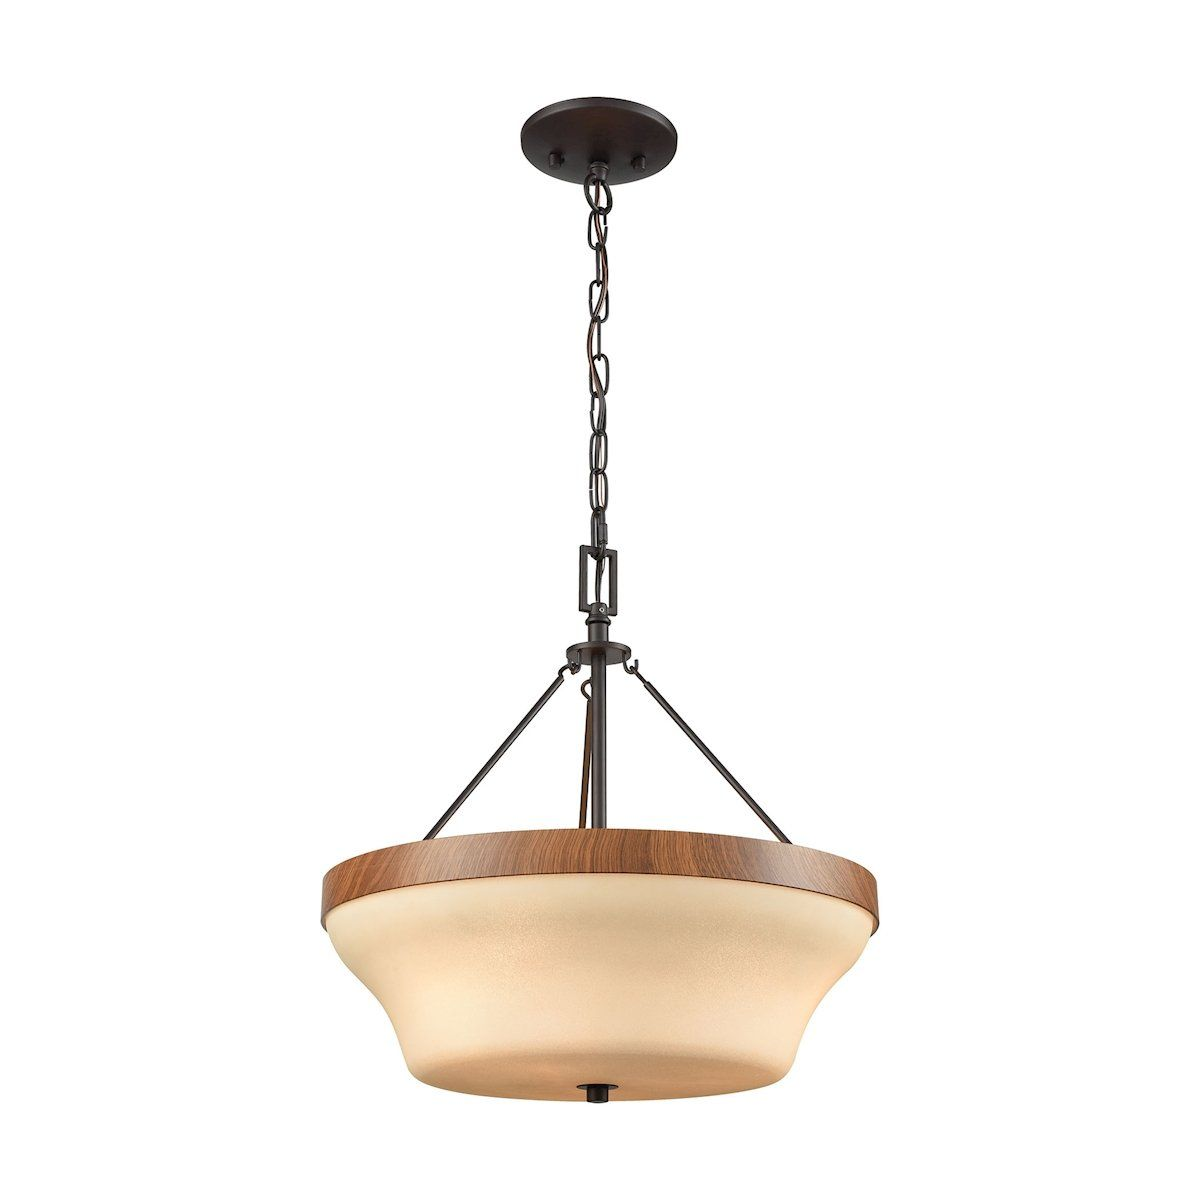 Park city light pendantsemi flush dual mount in oil rubbed bronze